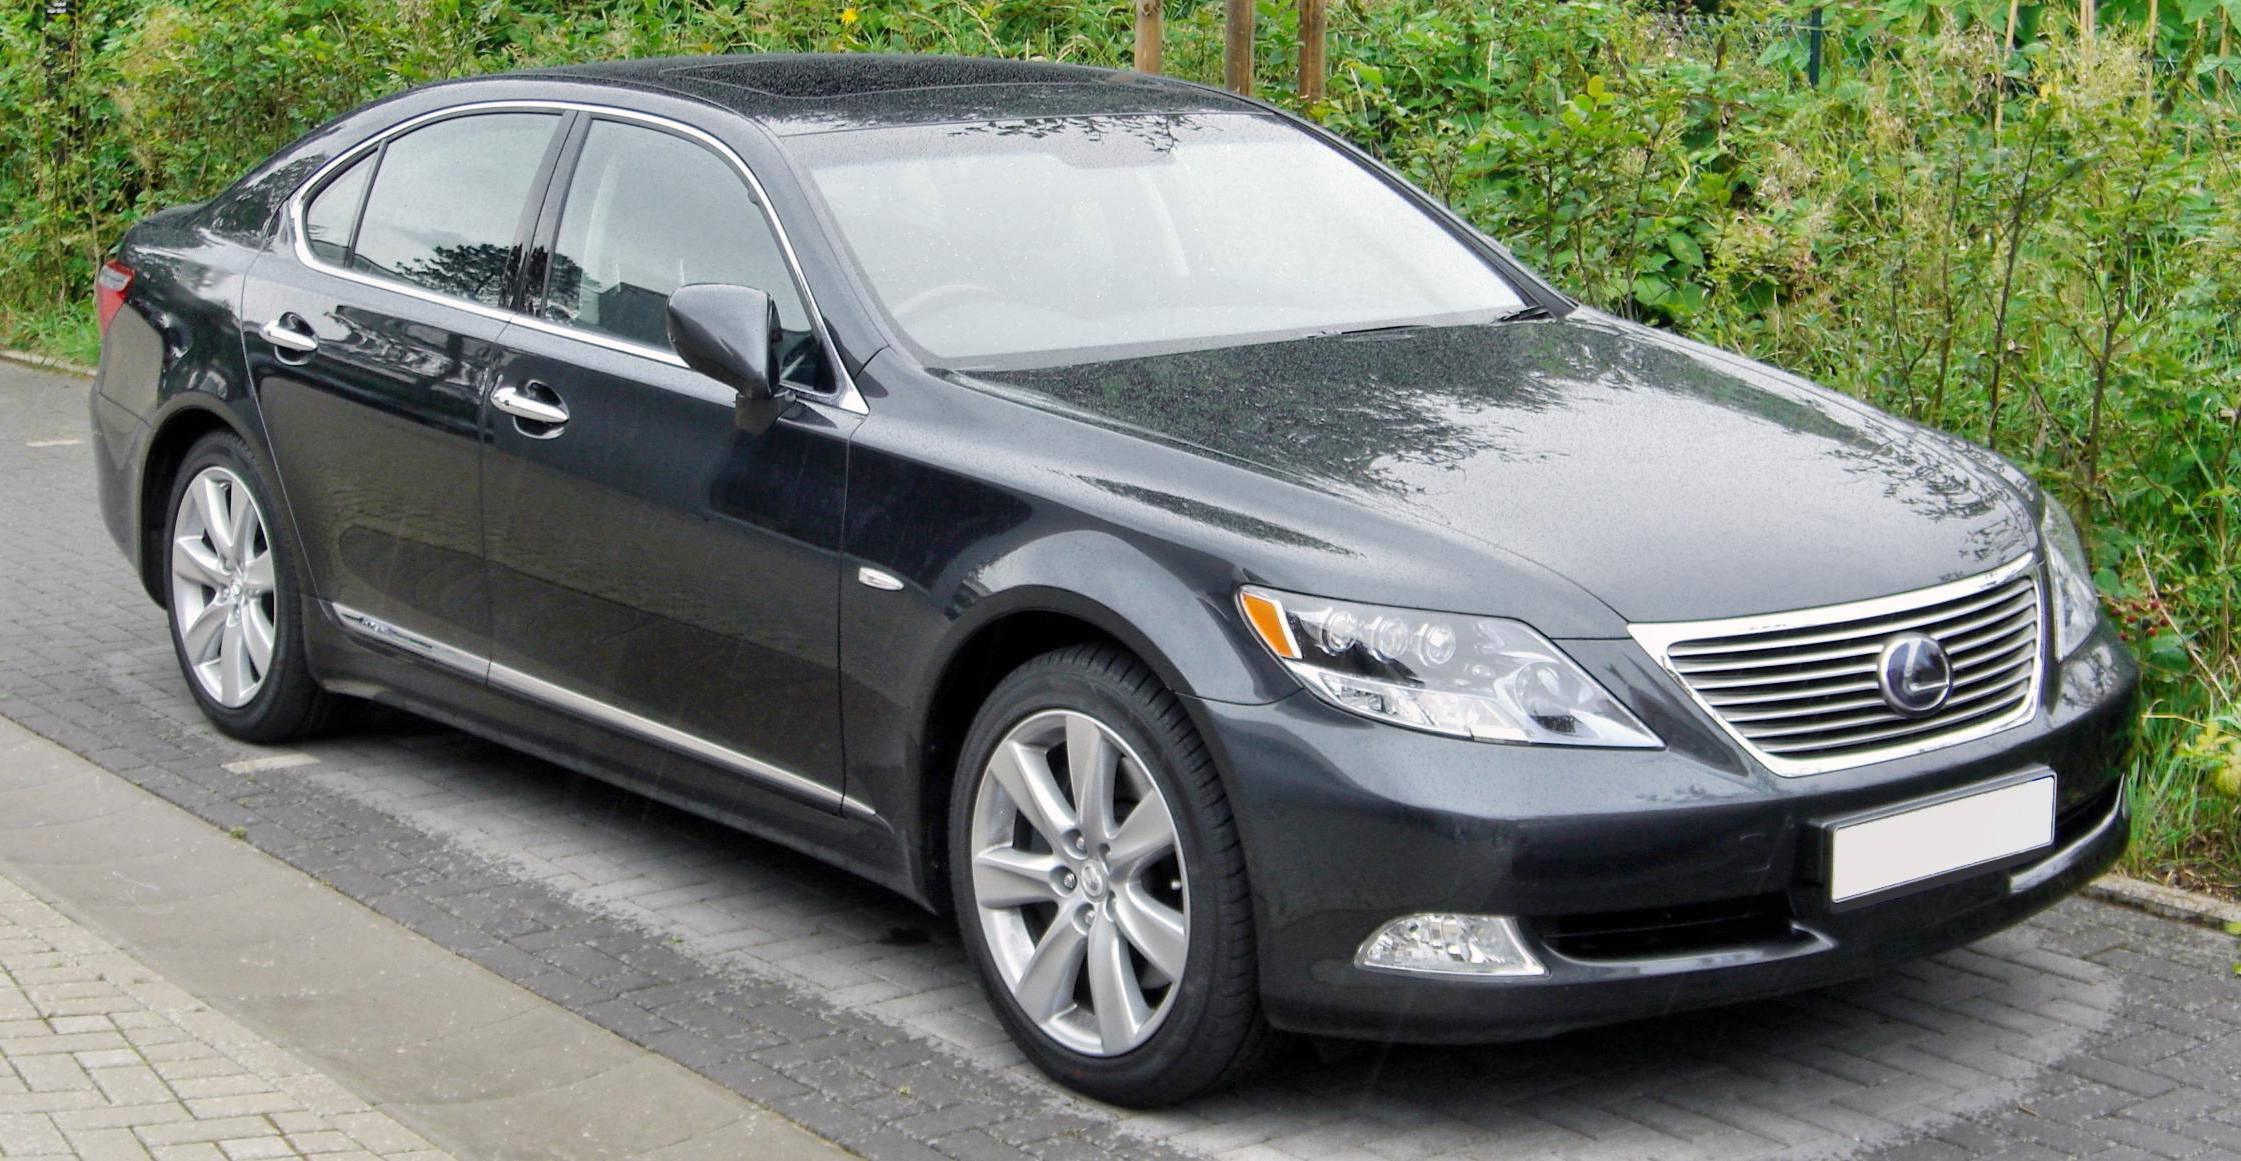 https://upload.wikimedia.org/wikipedia/commons/4/40/LEXUS_LS_600h_front.JPG